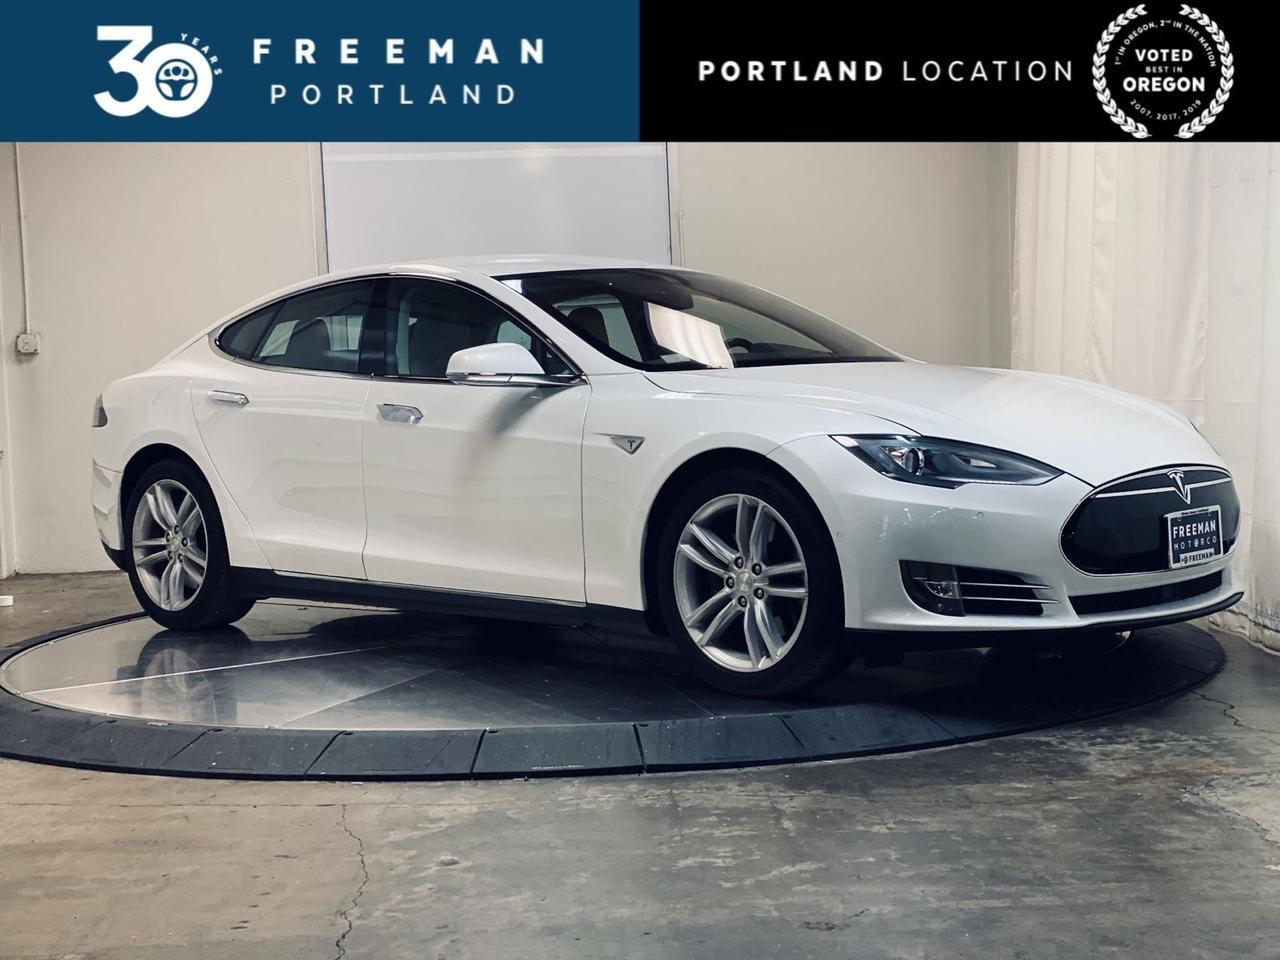 2015 Tesla Model S 70D AutoPilot Htd Seats Low Miles Portland OR